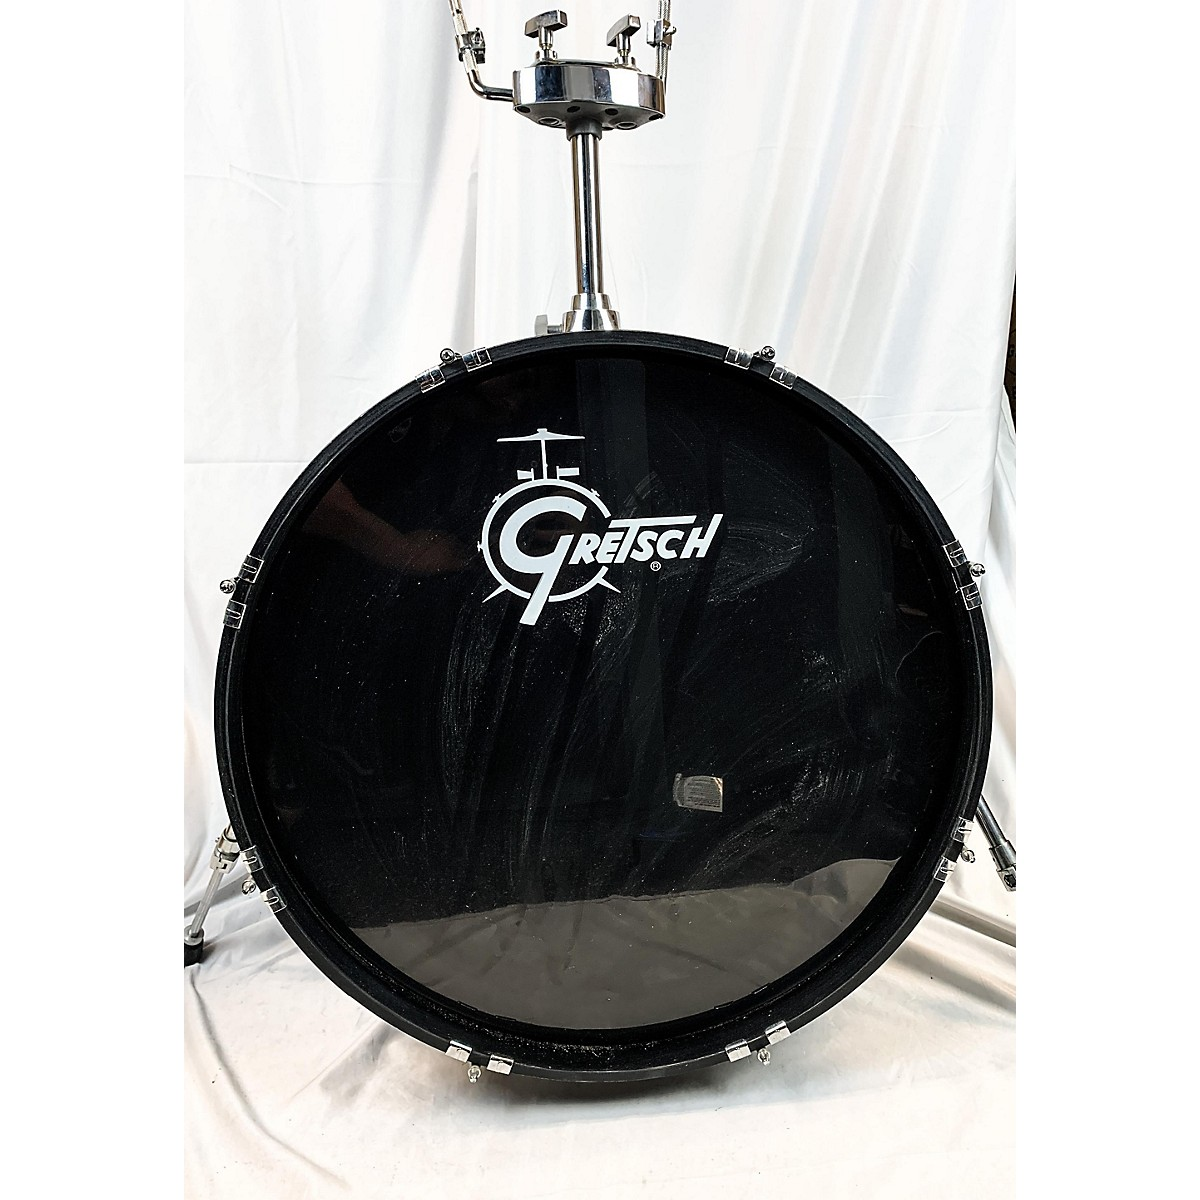 Gretsch Drums BlackHawk Drum Kit